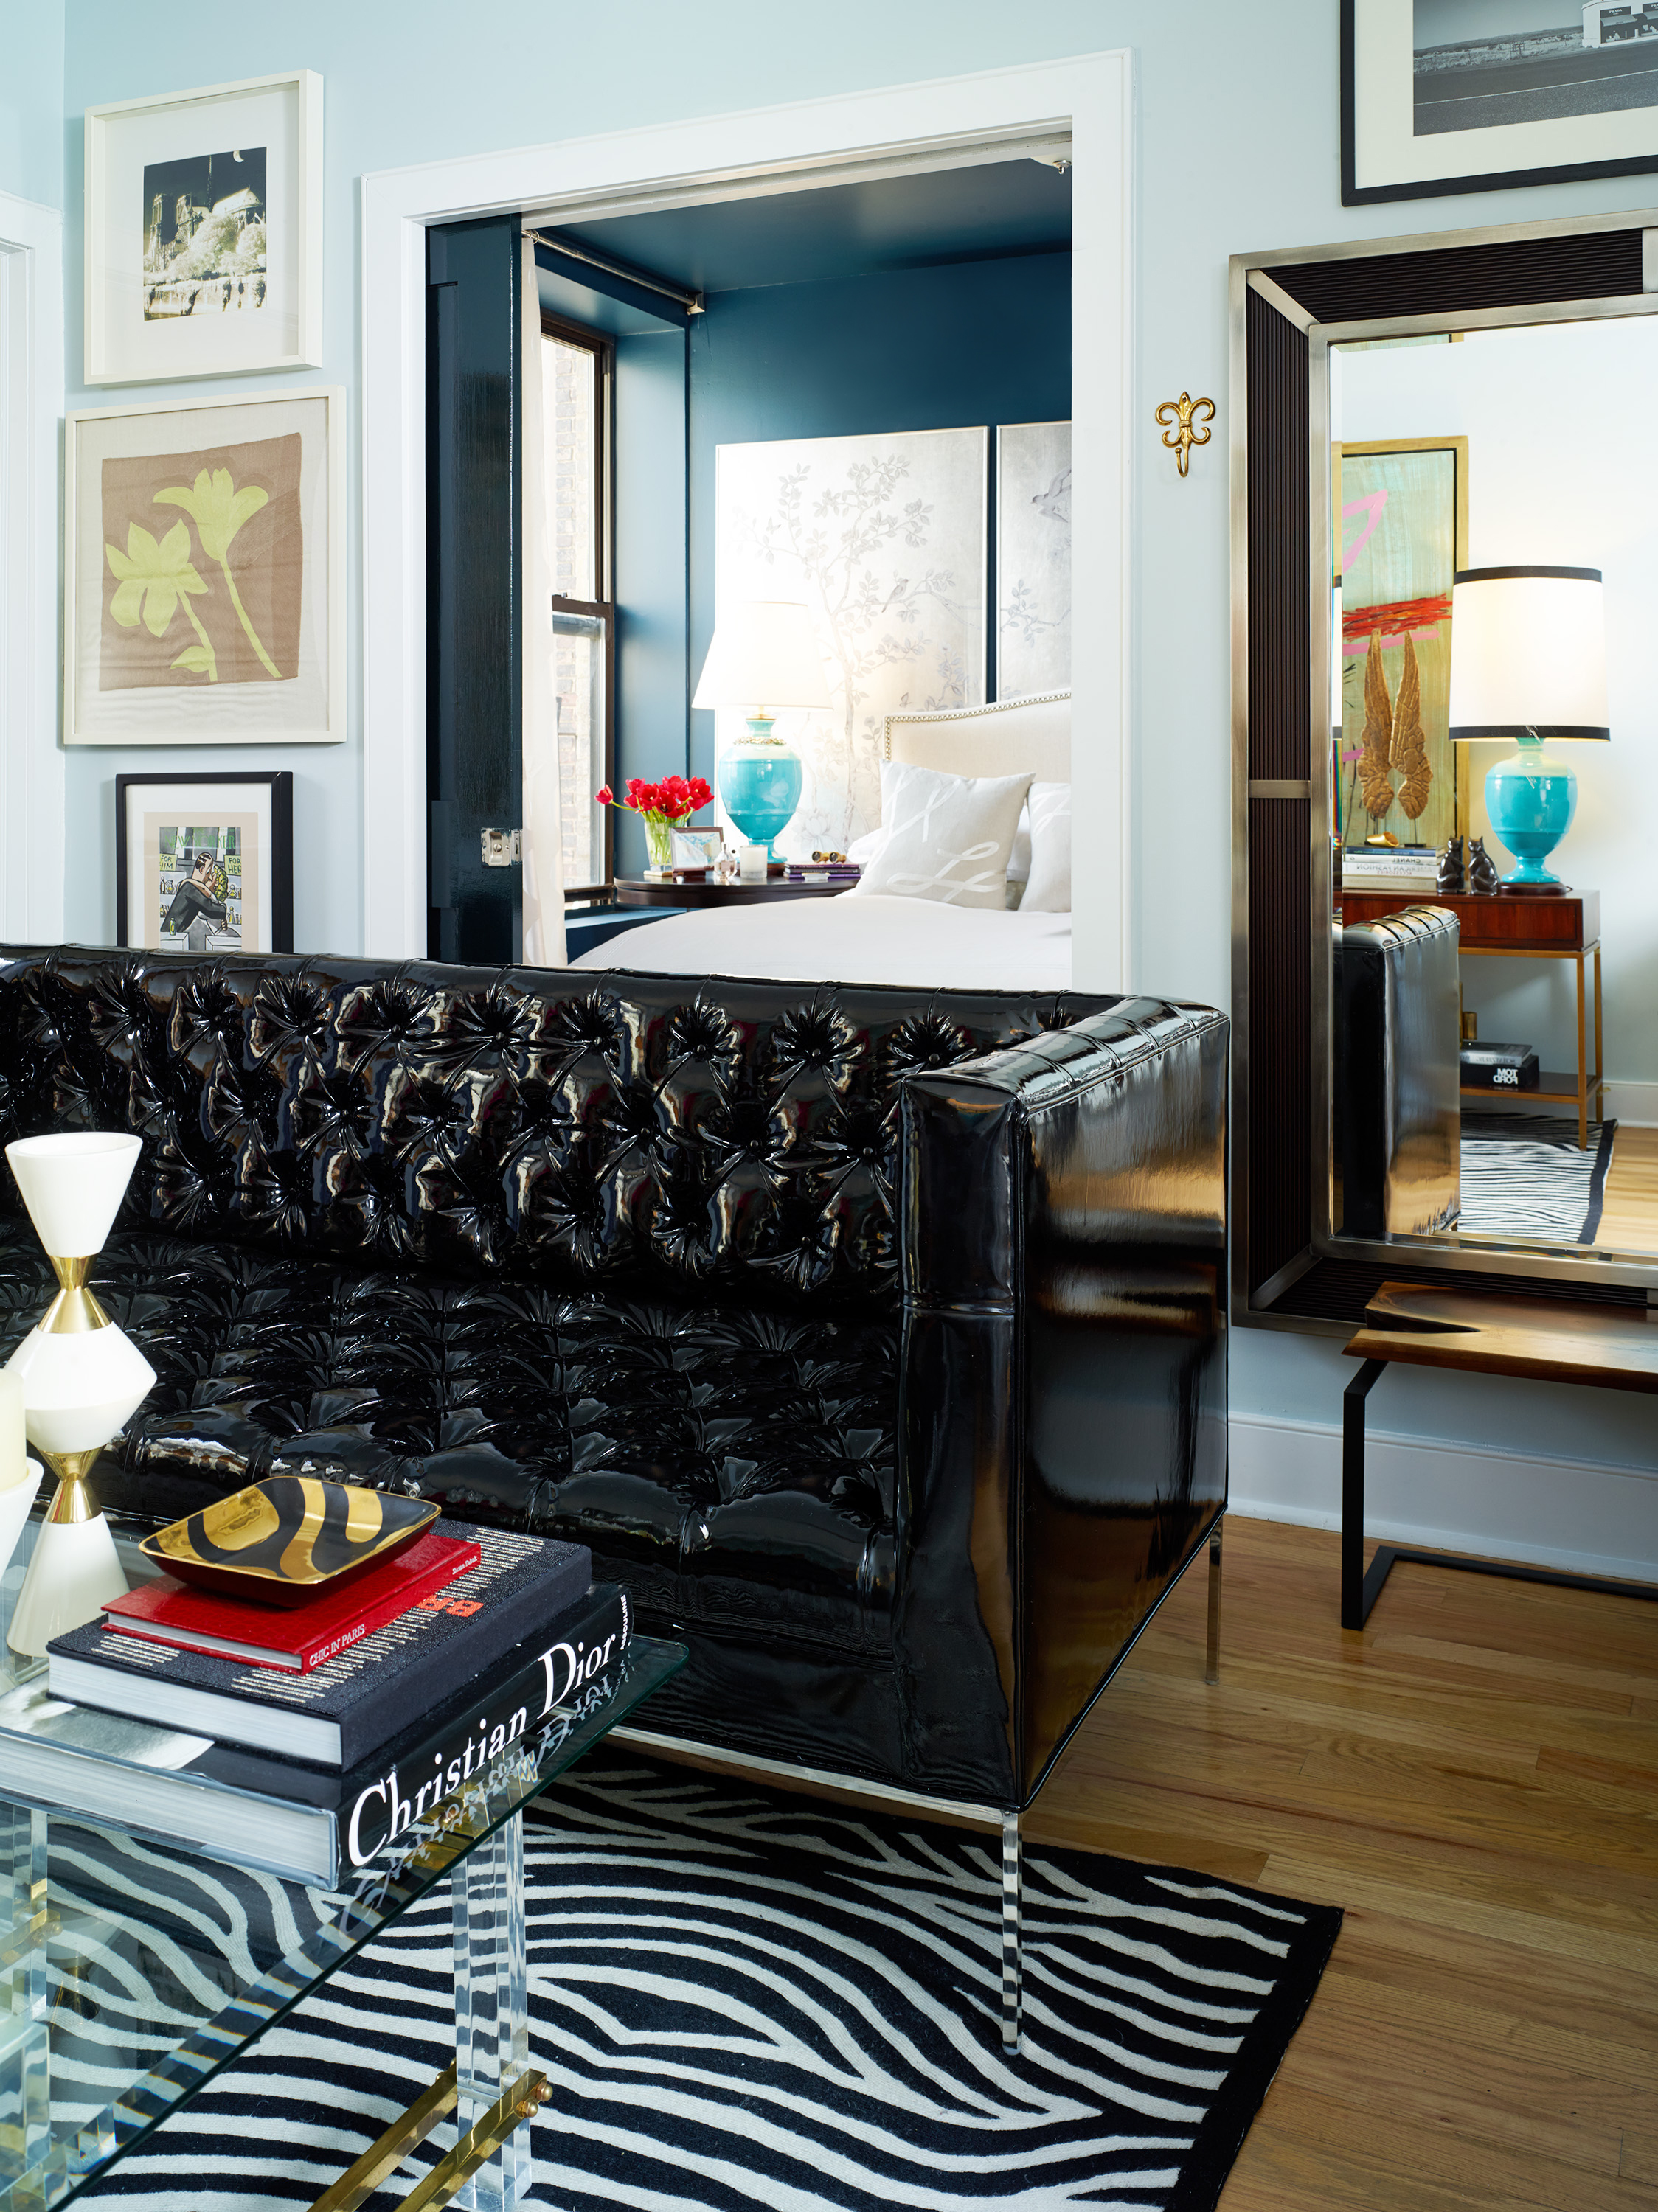 Harlem Living Room 2 - adjusted.jpg